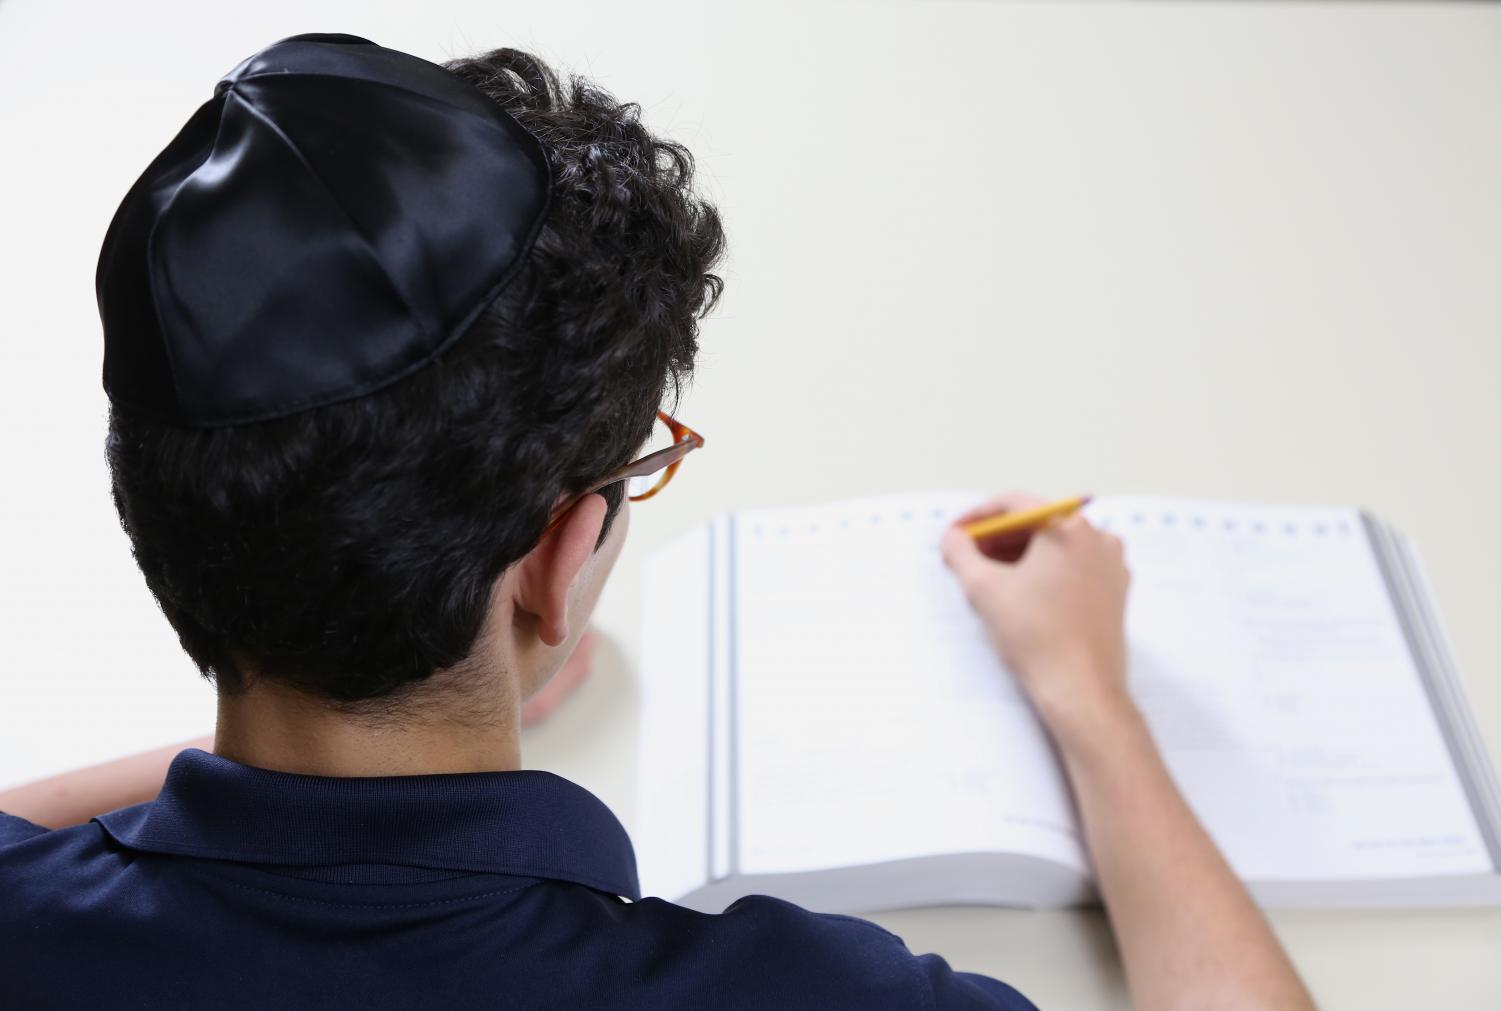 On Sept. 30, Jewish students had to make a decision between taking the ACT and observing Yom Kippur.